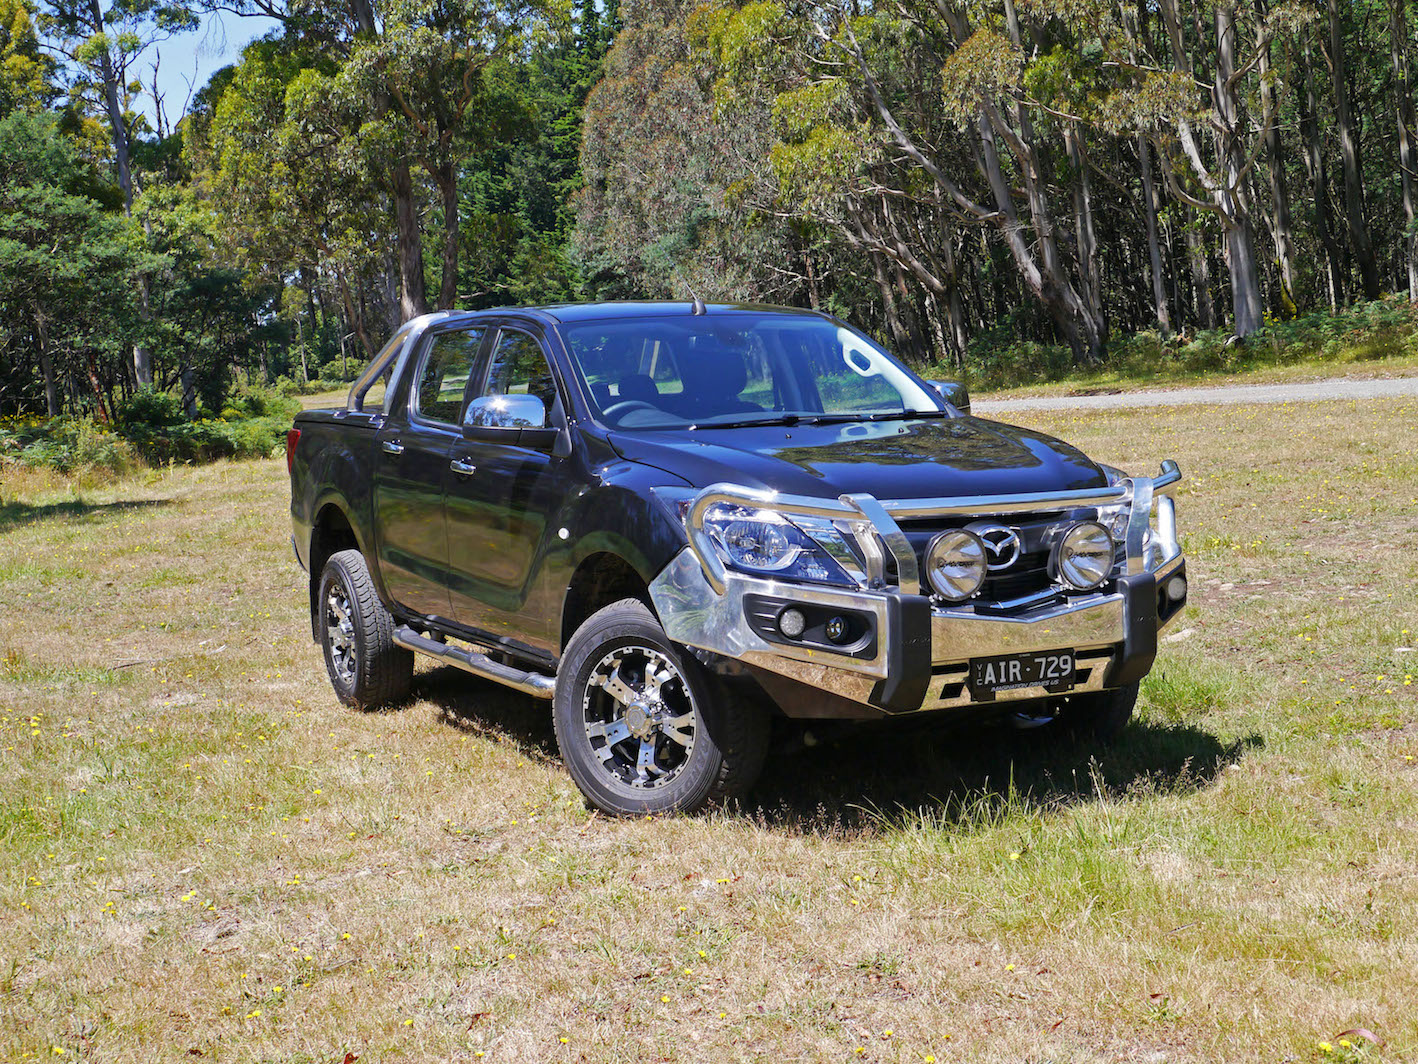 2017 Mazda BT-50 XTR 4x4 Dual Cab Review | Workhorse Feel With Family Appeal